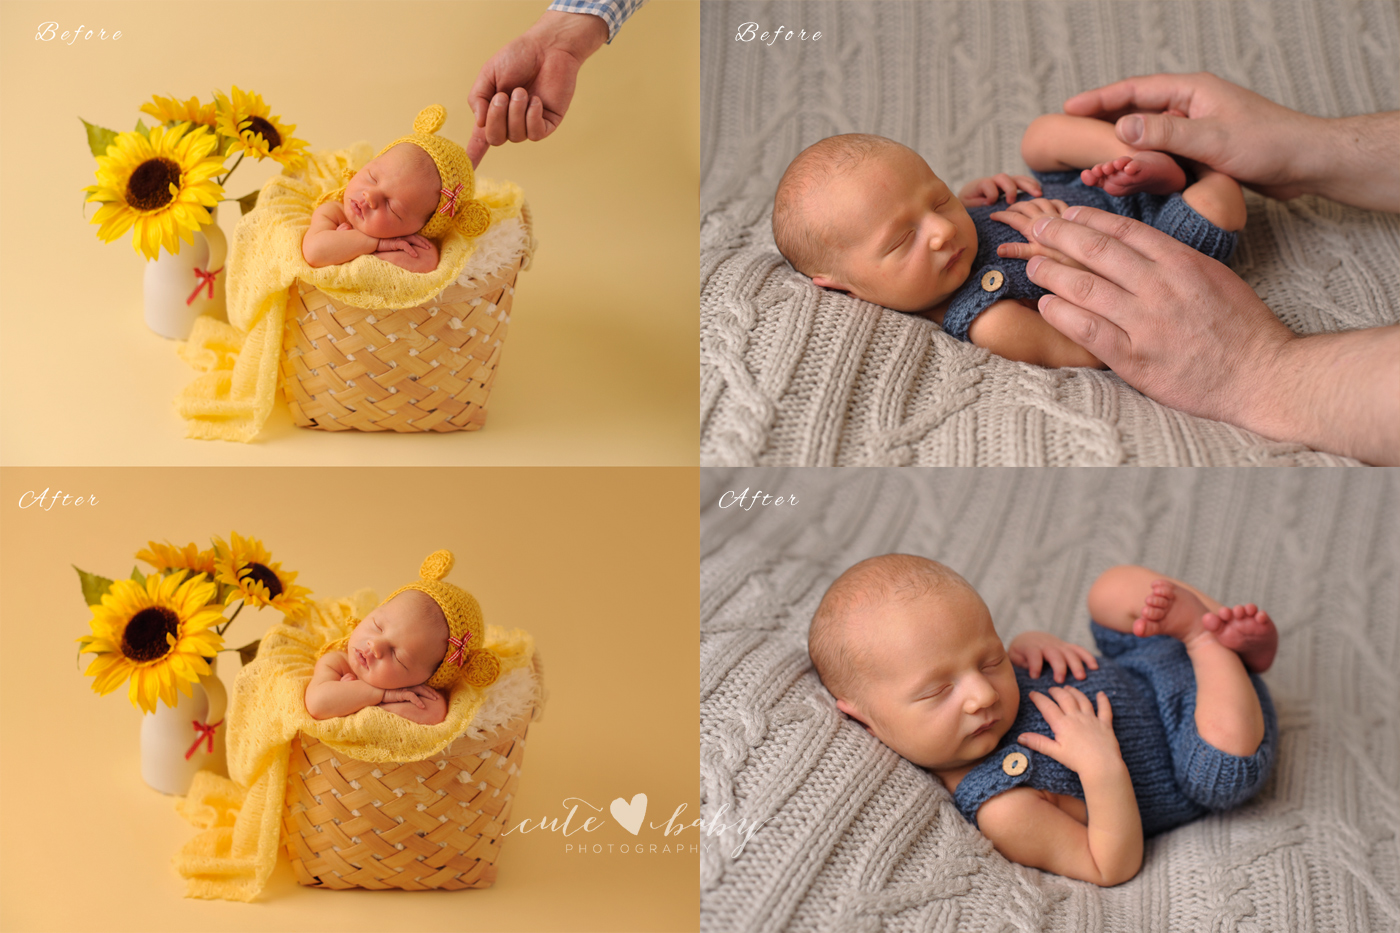 Newborn Photography Manchester, Newborn Pictures Cheshire, Cute Baby Photography